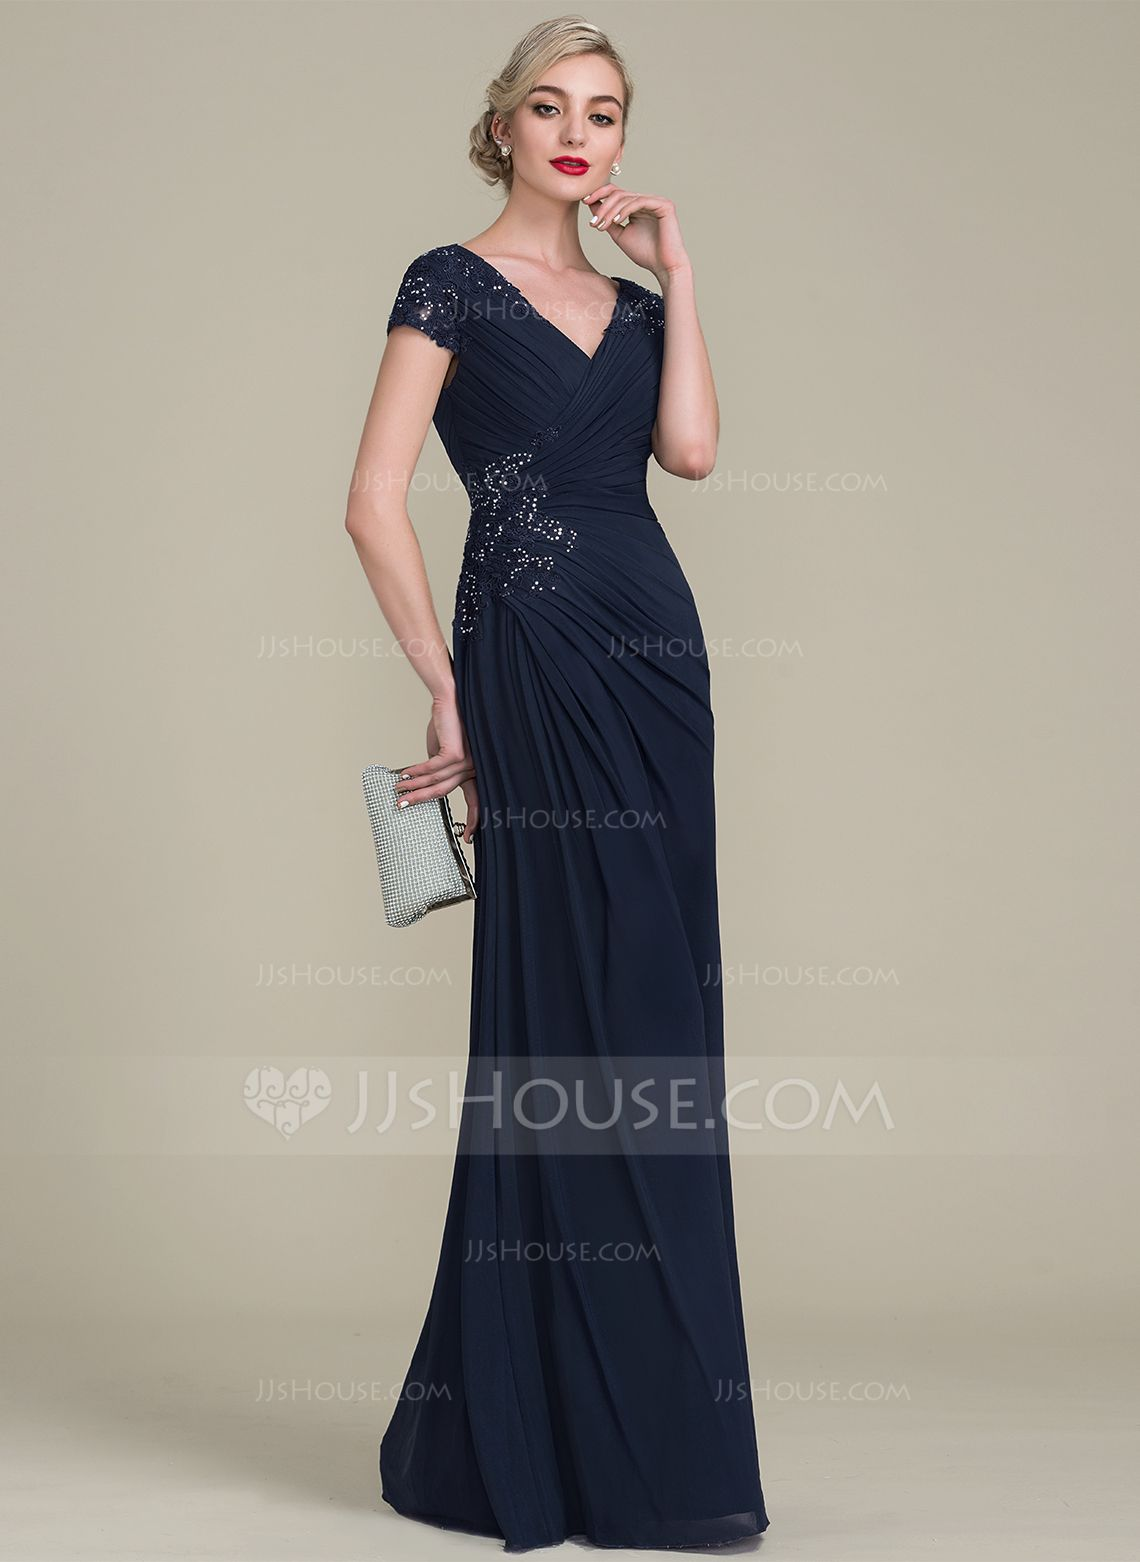 Alineprincess vneck floorlength jersey mother of the bride dress